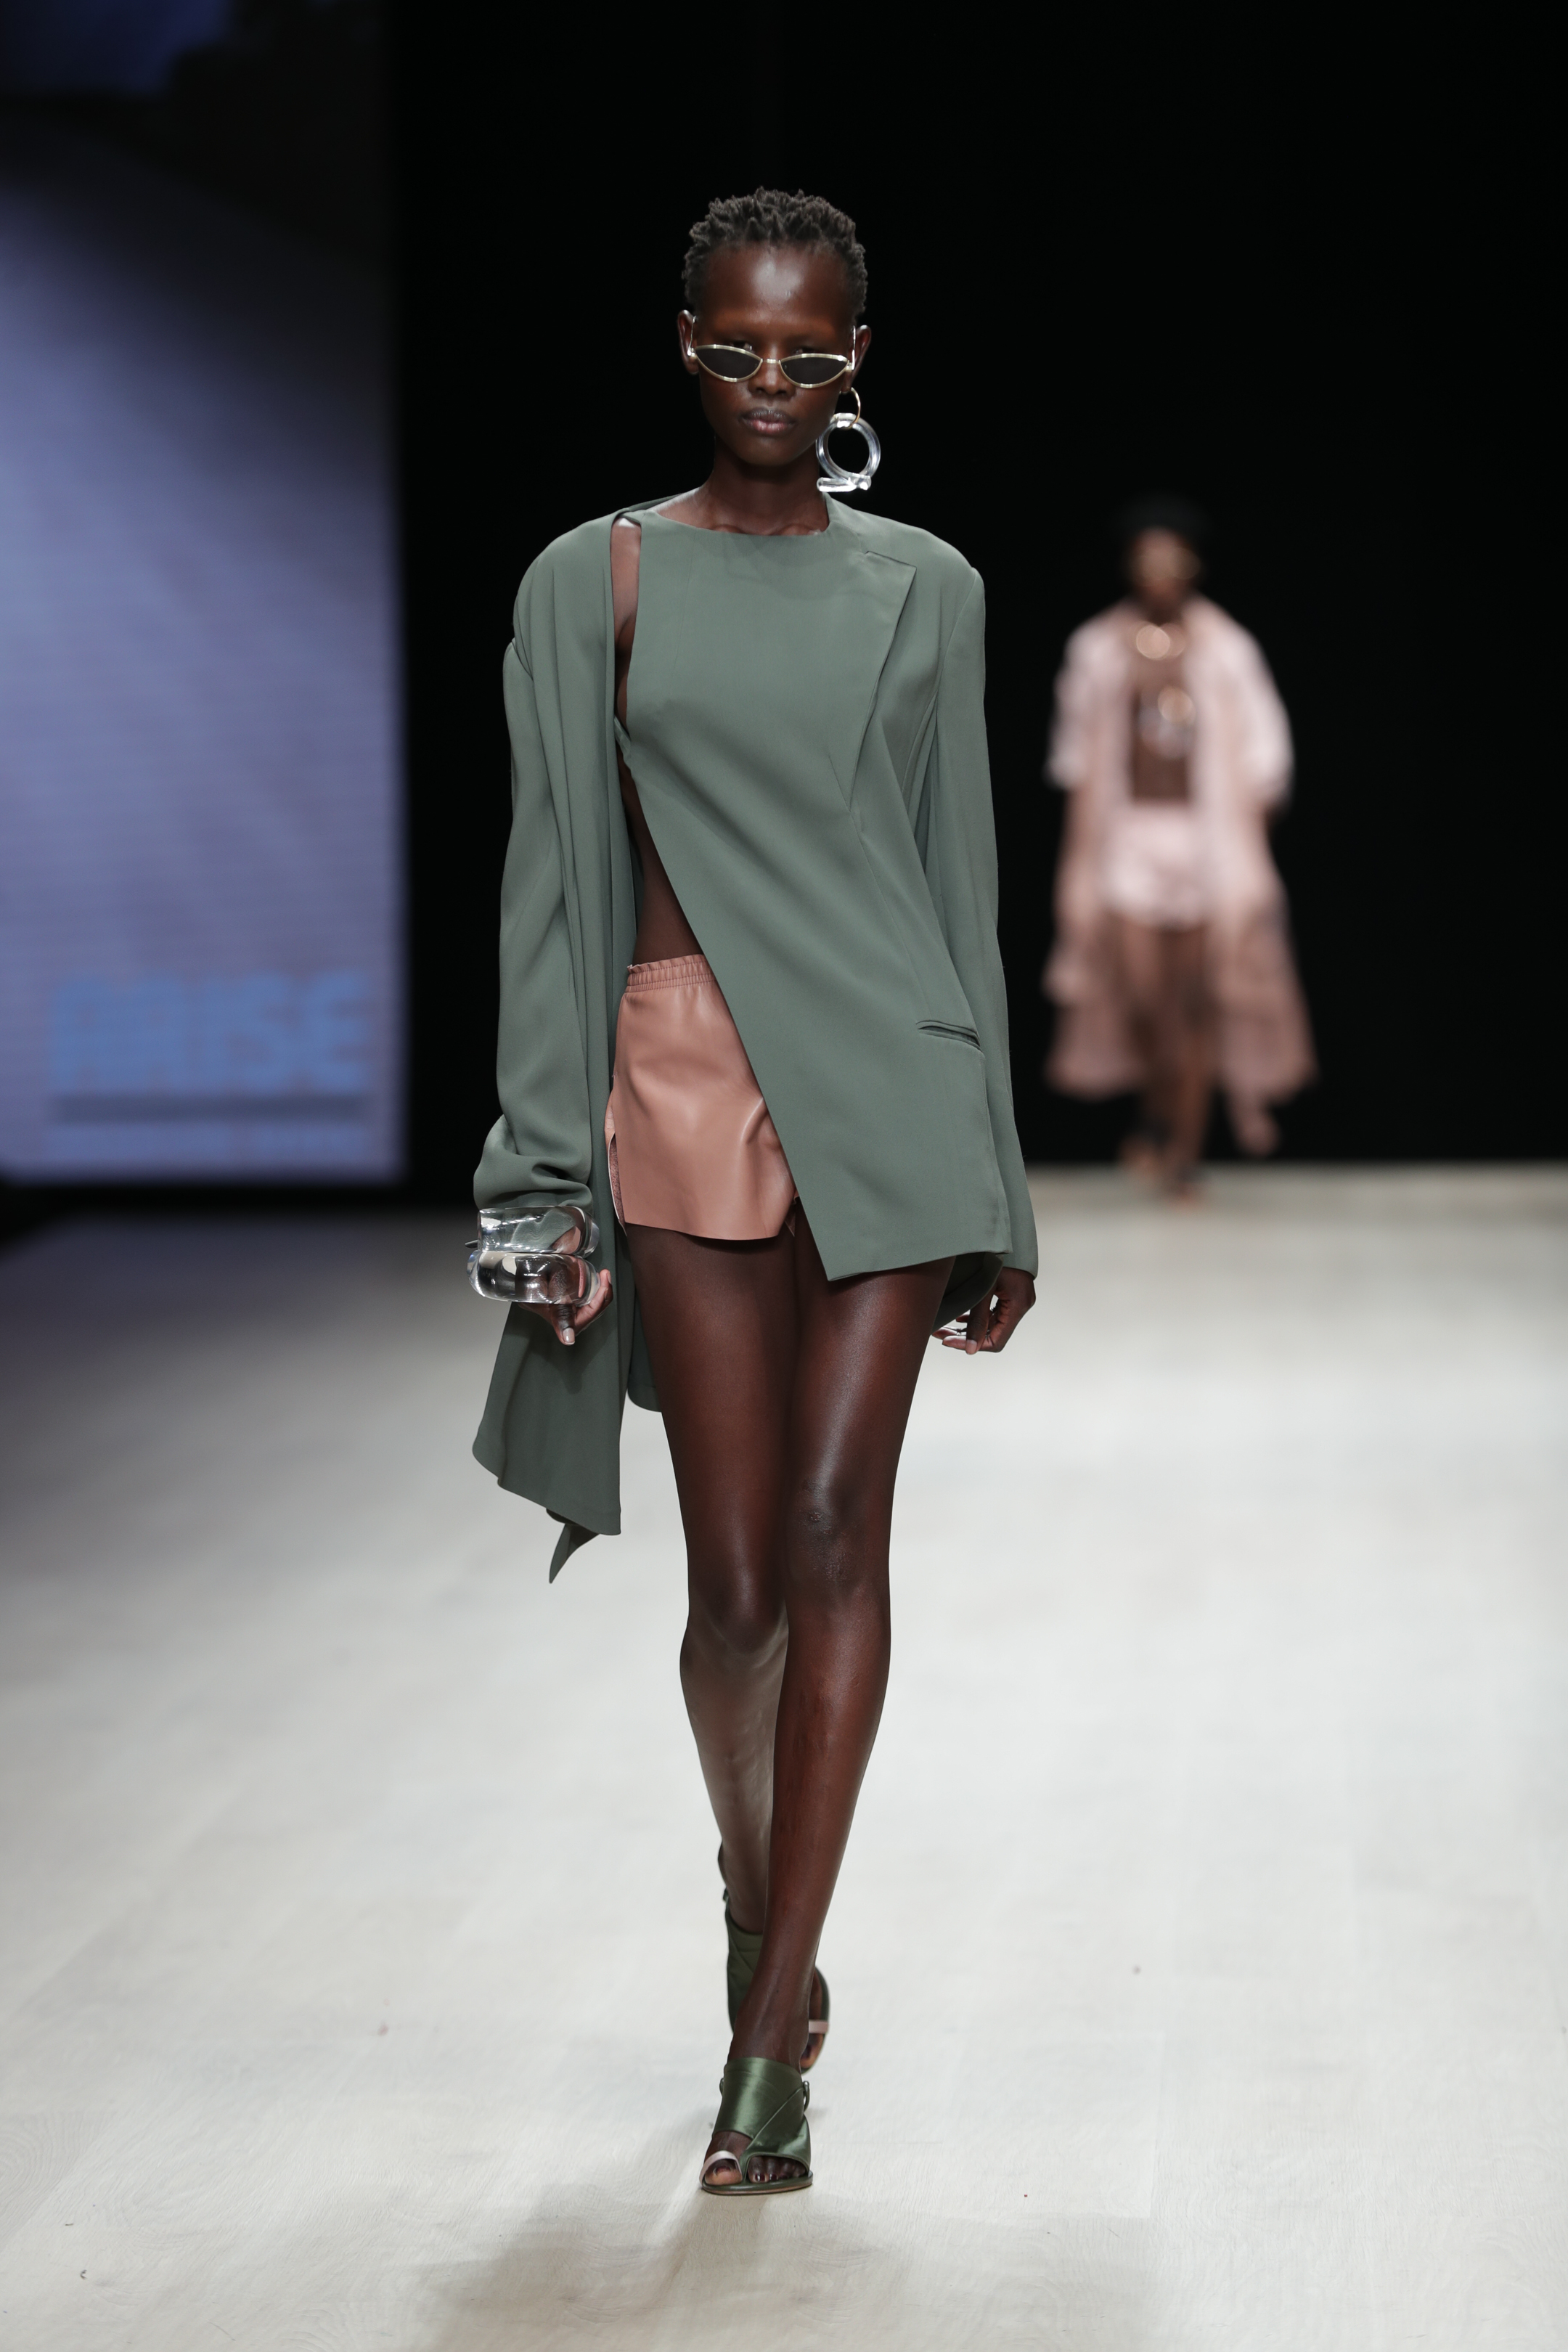 ARISE Fashion Week 2019 – Runway Day 3: Esteban Cortazar